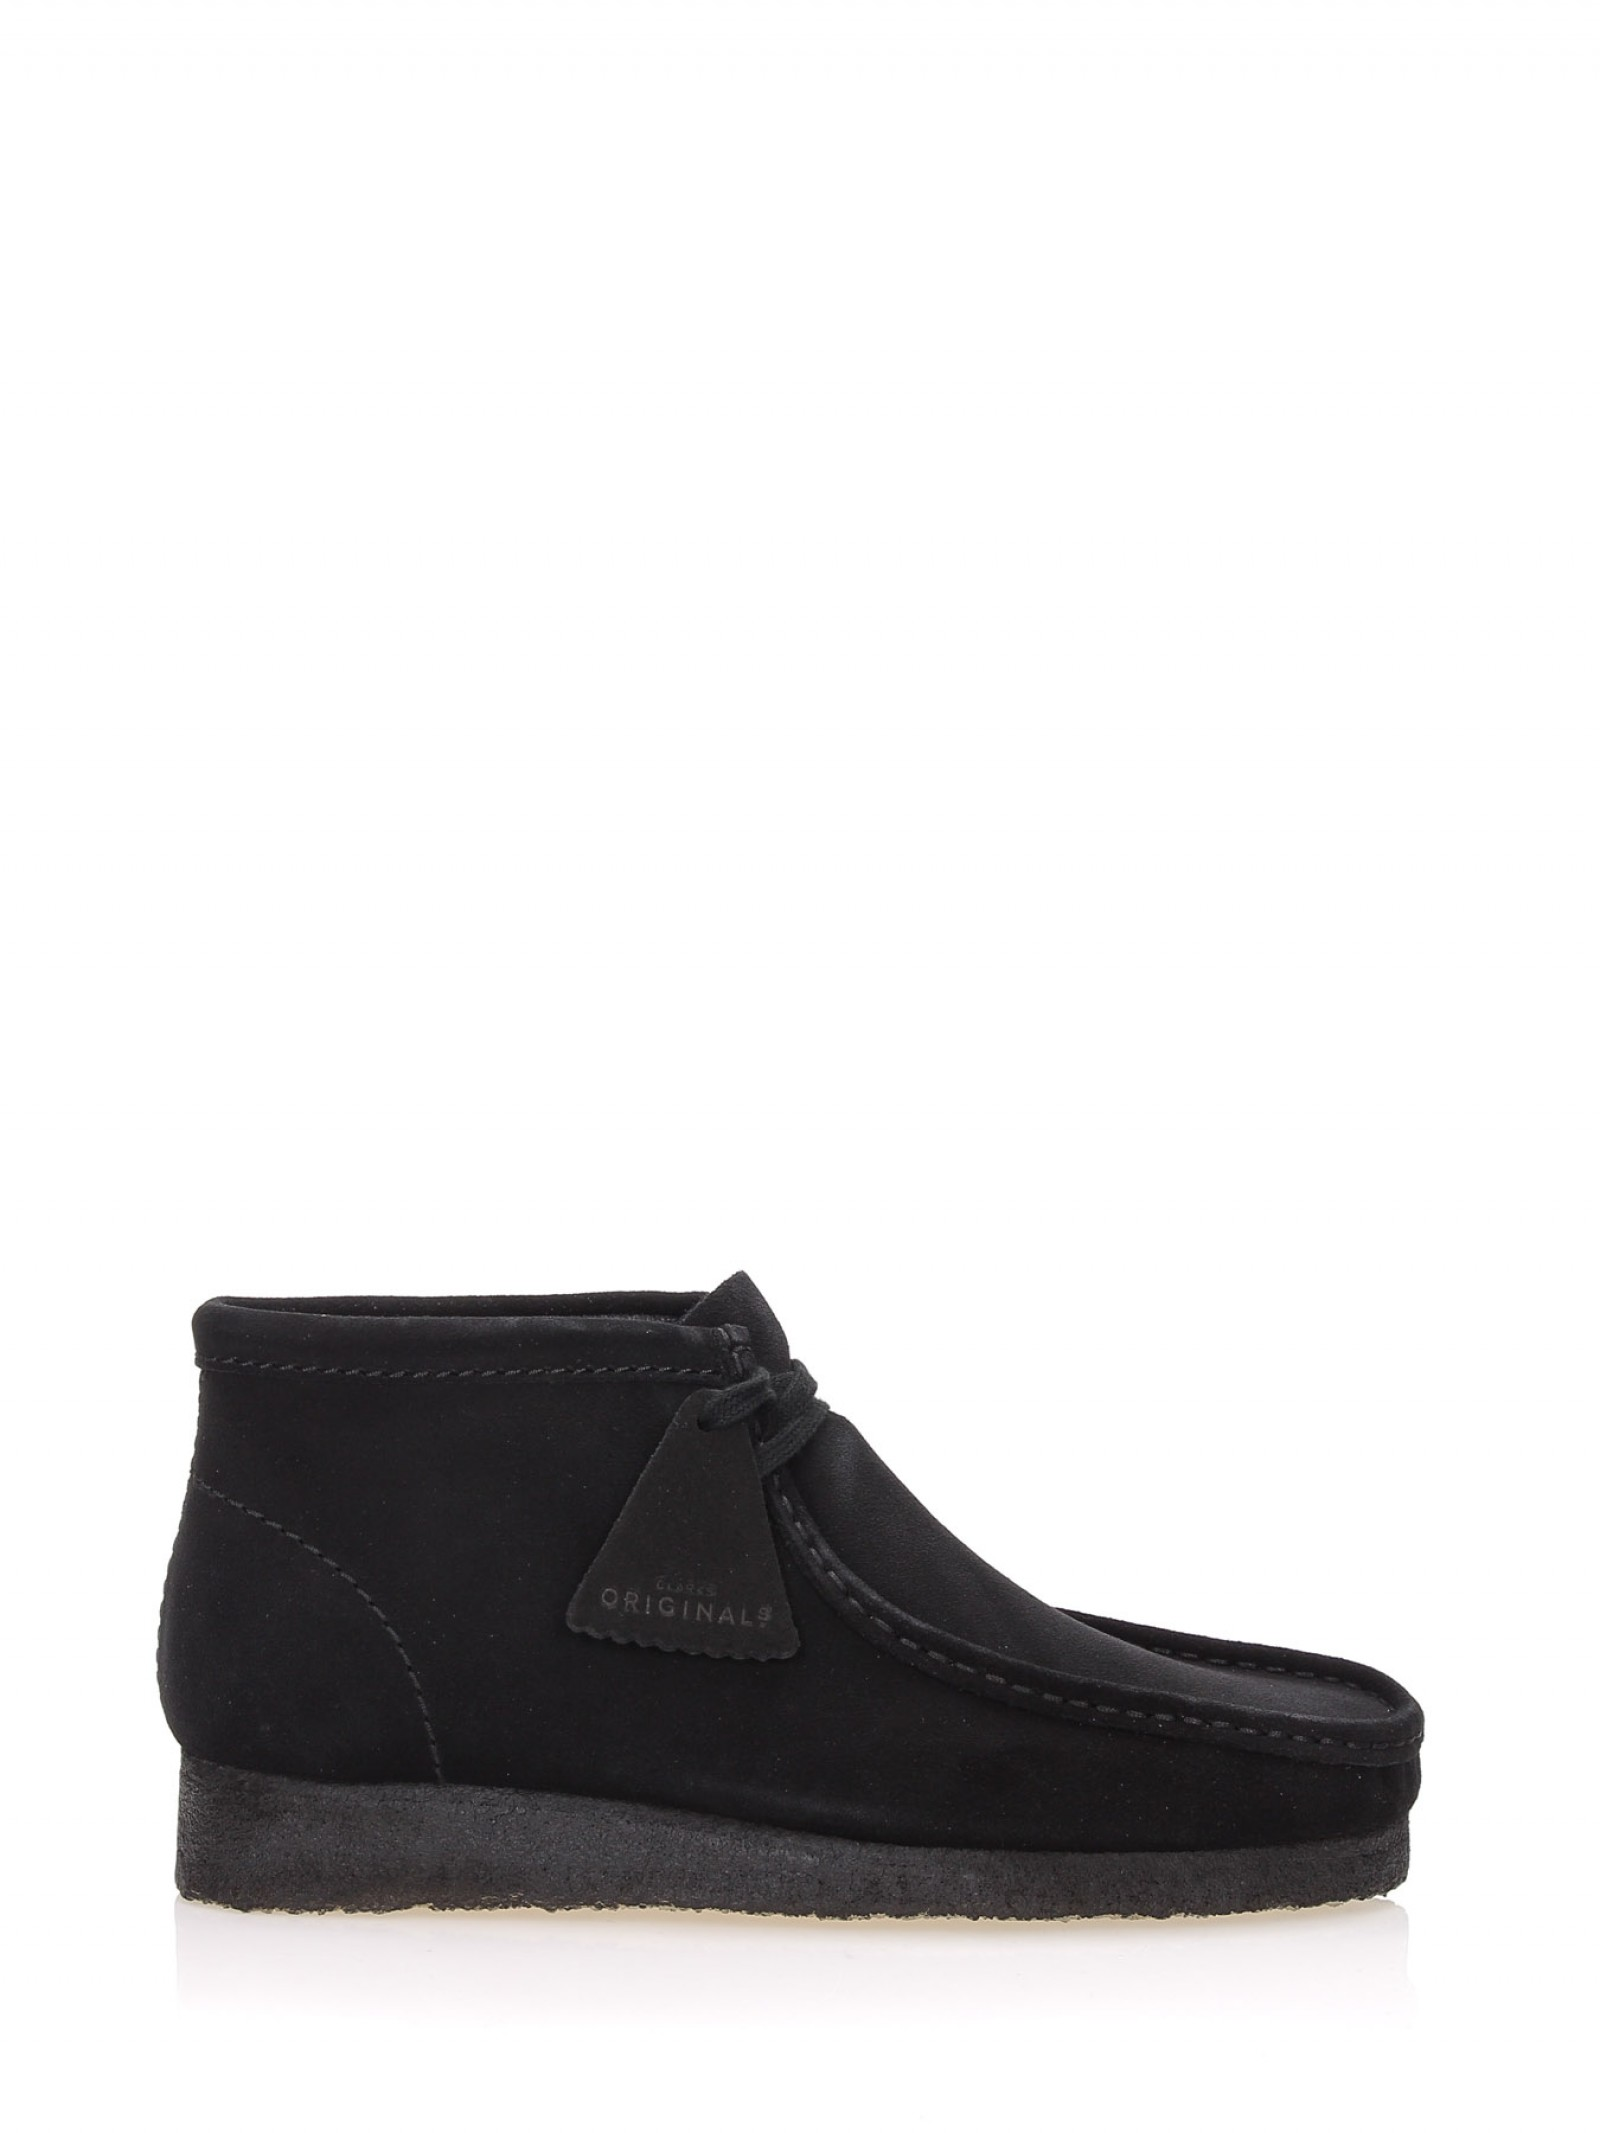 WALLABEE-BOOT-SUEDE-BLACK - Clarks - I8518